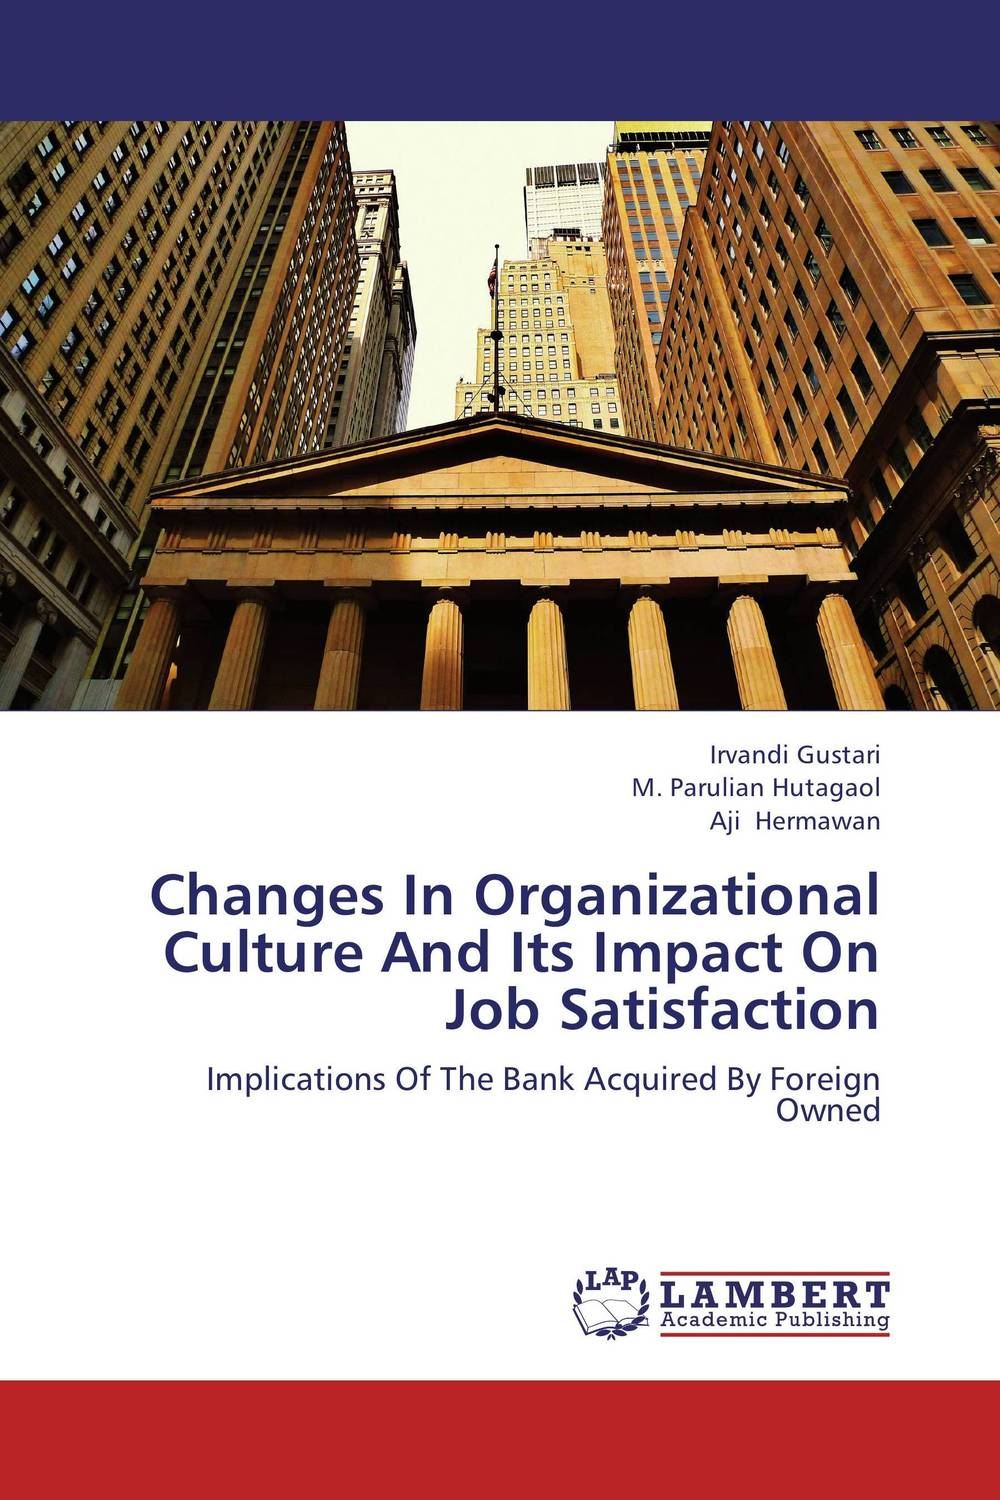 Changes In Organizational Culture And Its Impact On Job Satisfaction changes in organizational culture and its impact on job satisfaction